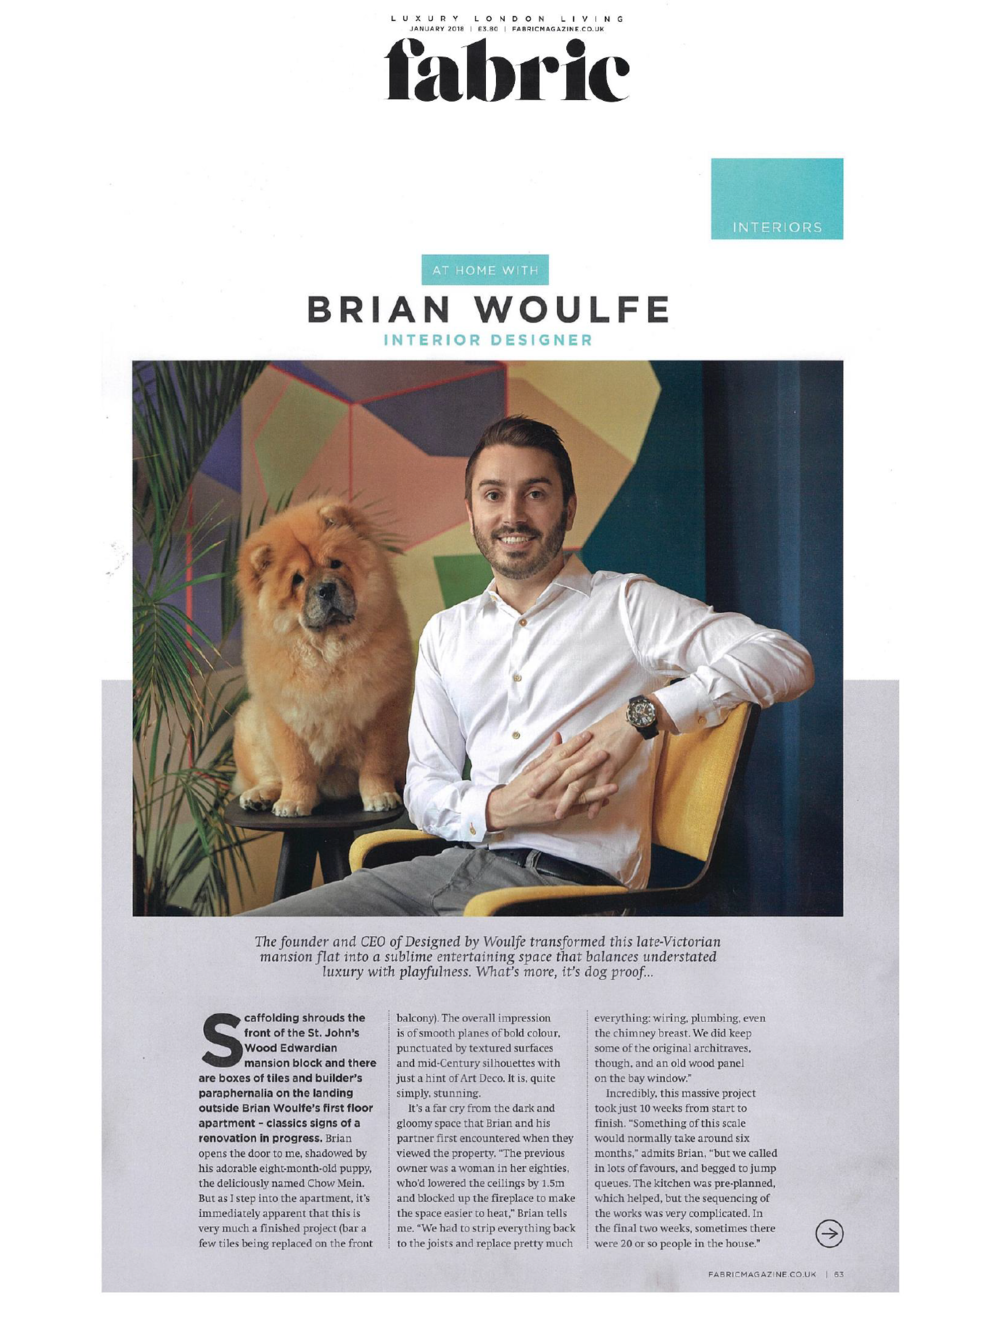 Interior Designer Brian Woulfe interview by Fabric Magazine. Designed by Woulfe